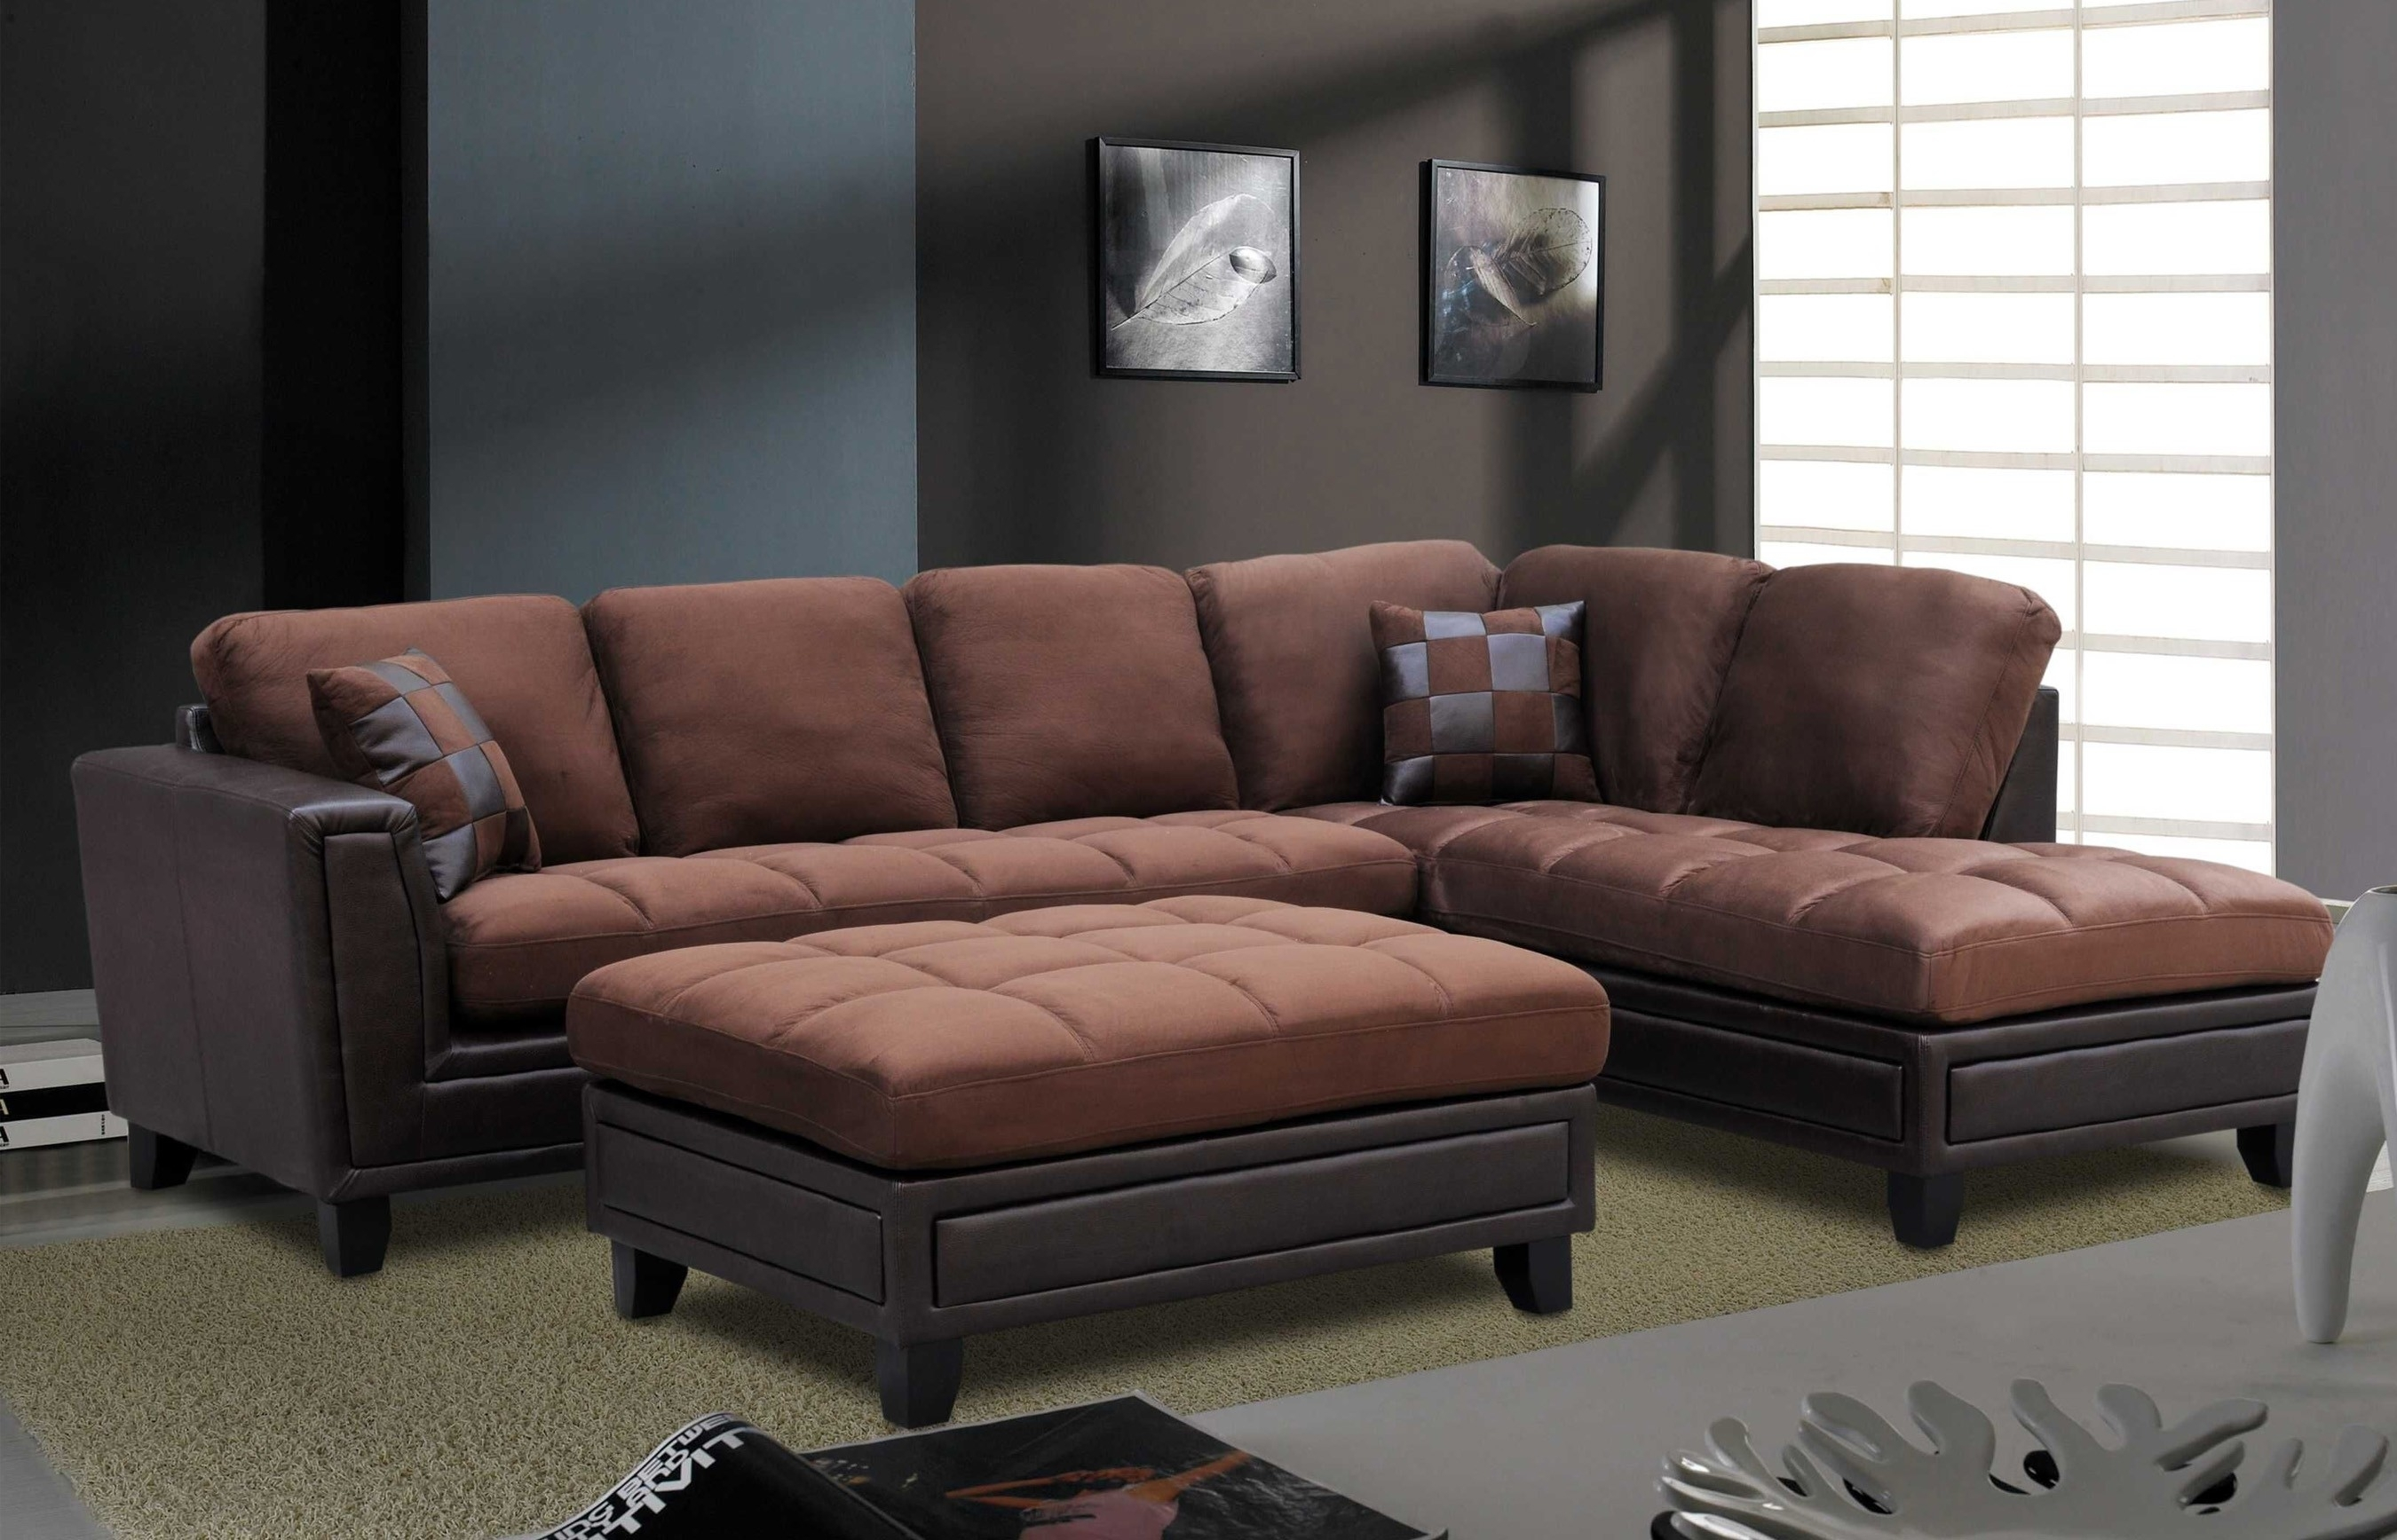 Microfiber Sectional With Free Ottoman – Chocolate Brown | Orange Throughout Orange County Ca Sectional Sofas (View 8 of 10)